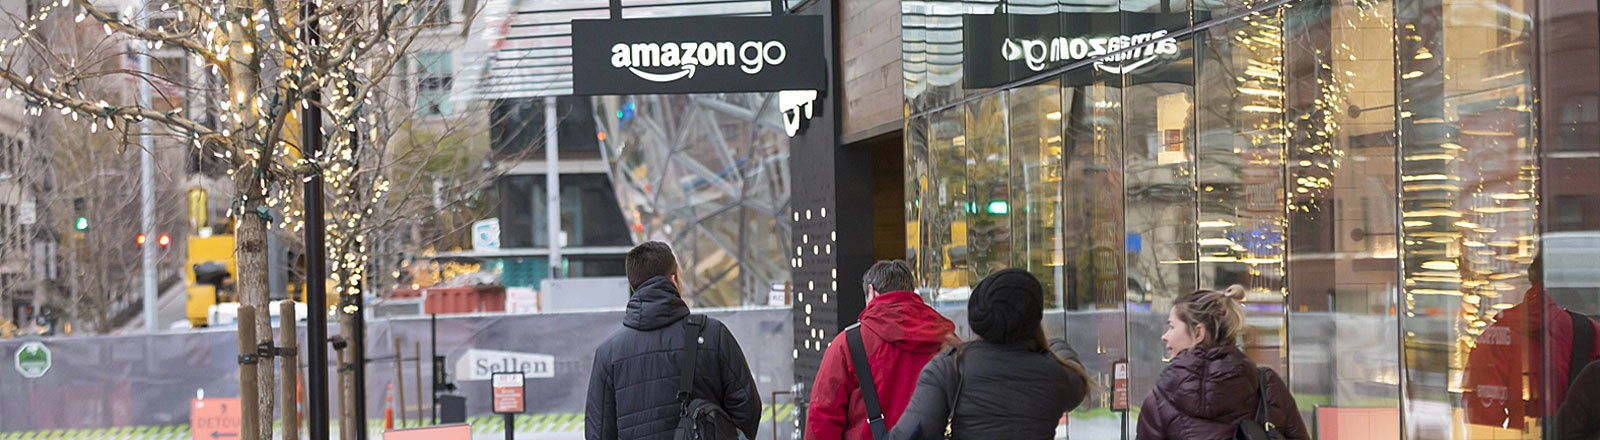 Passanten vor dem Amazon-Go-Supermarkt in Seattle